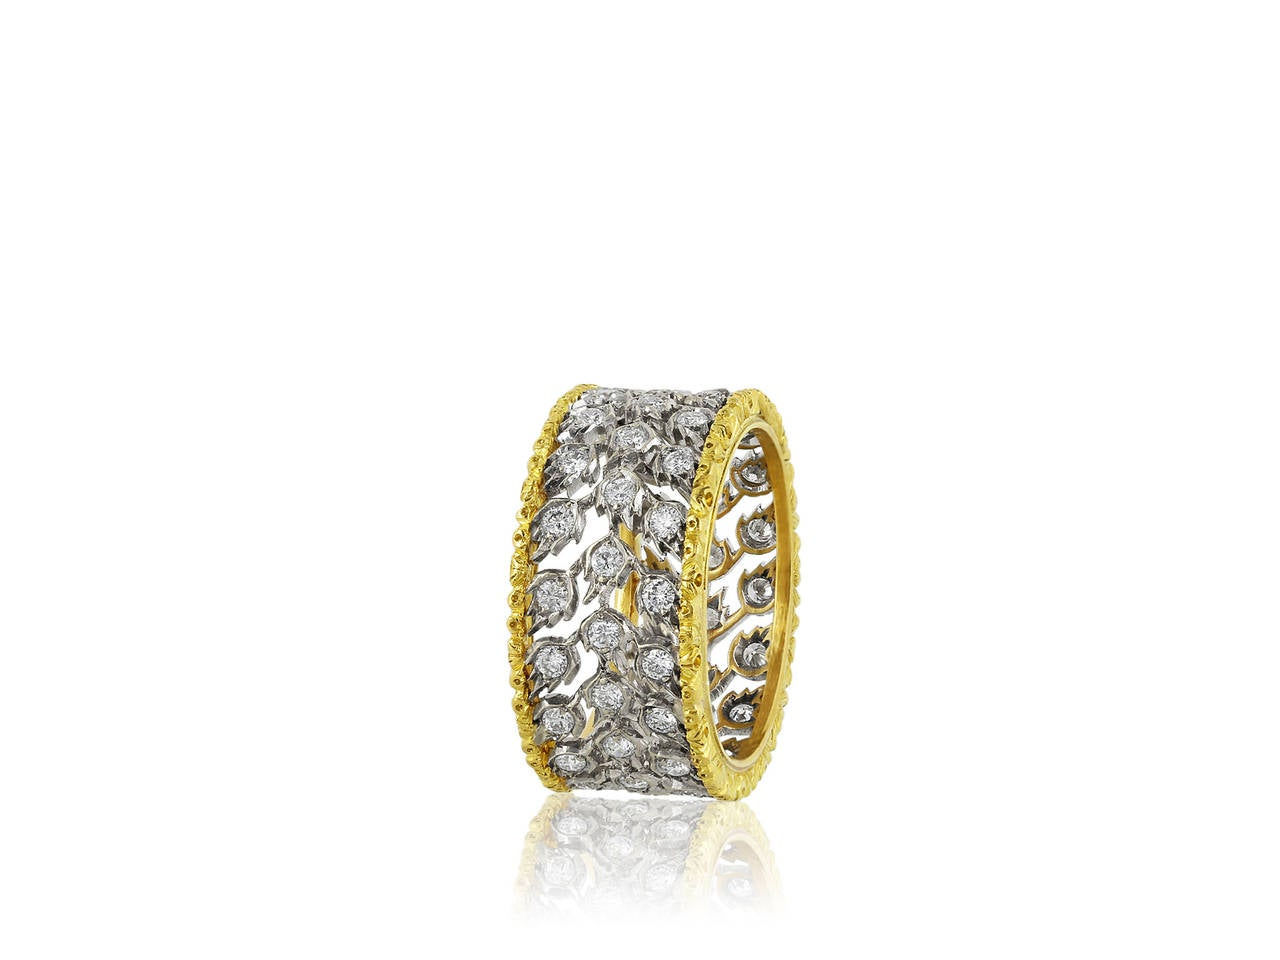 18 karat yellow and white gold Buccellati ring from the Milano collection. Ring features Round Brilliant Cut diamonds set on an open work setting weighing a total of 1.10 carats. Size 7.25.